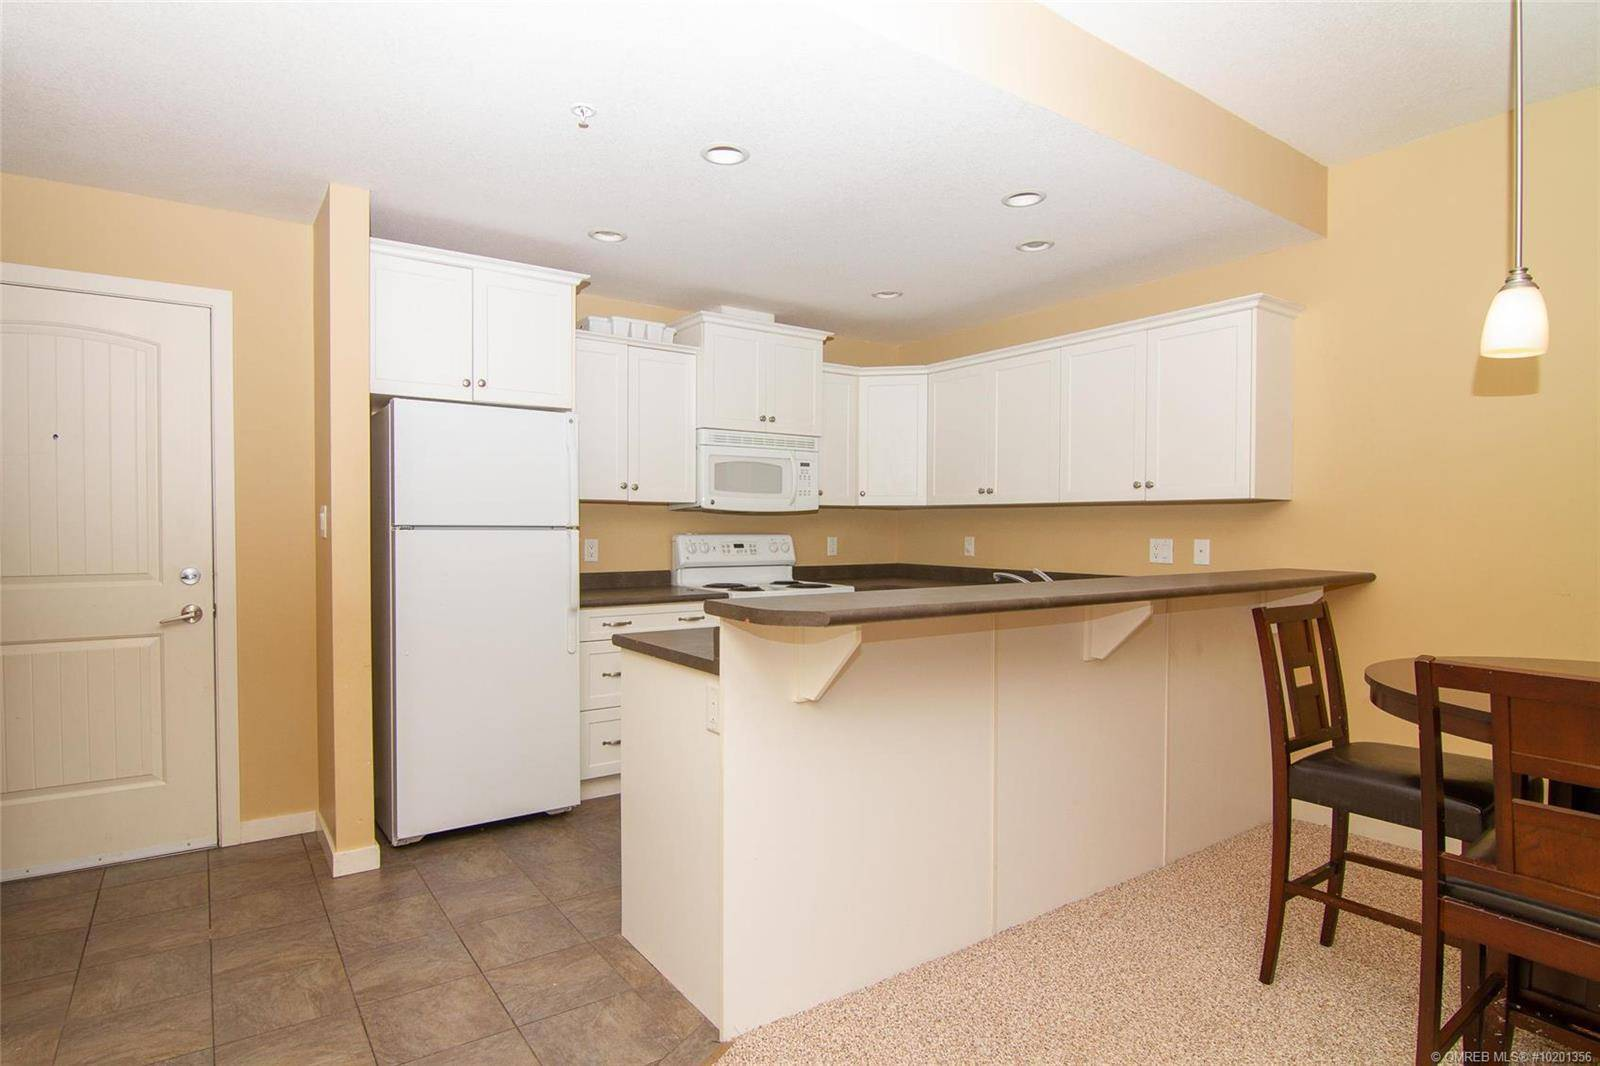 Condo for sale at 345 Mills Rd Unit 205 Kelowna British Columbia - MLS: 10201356